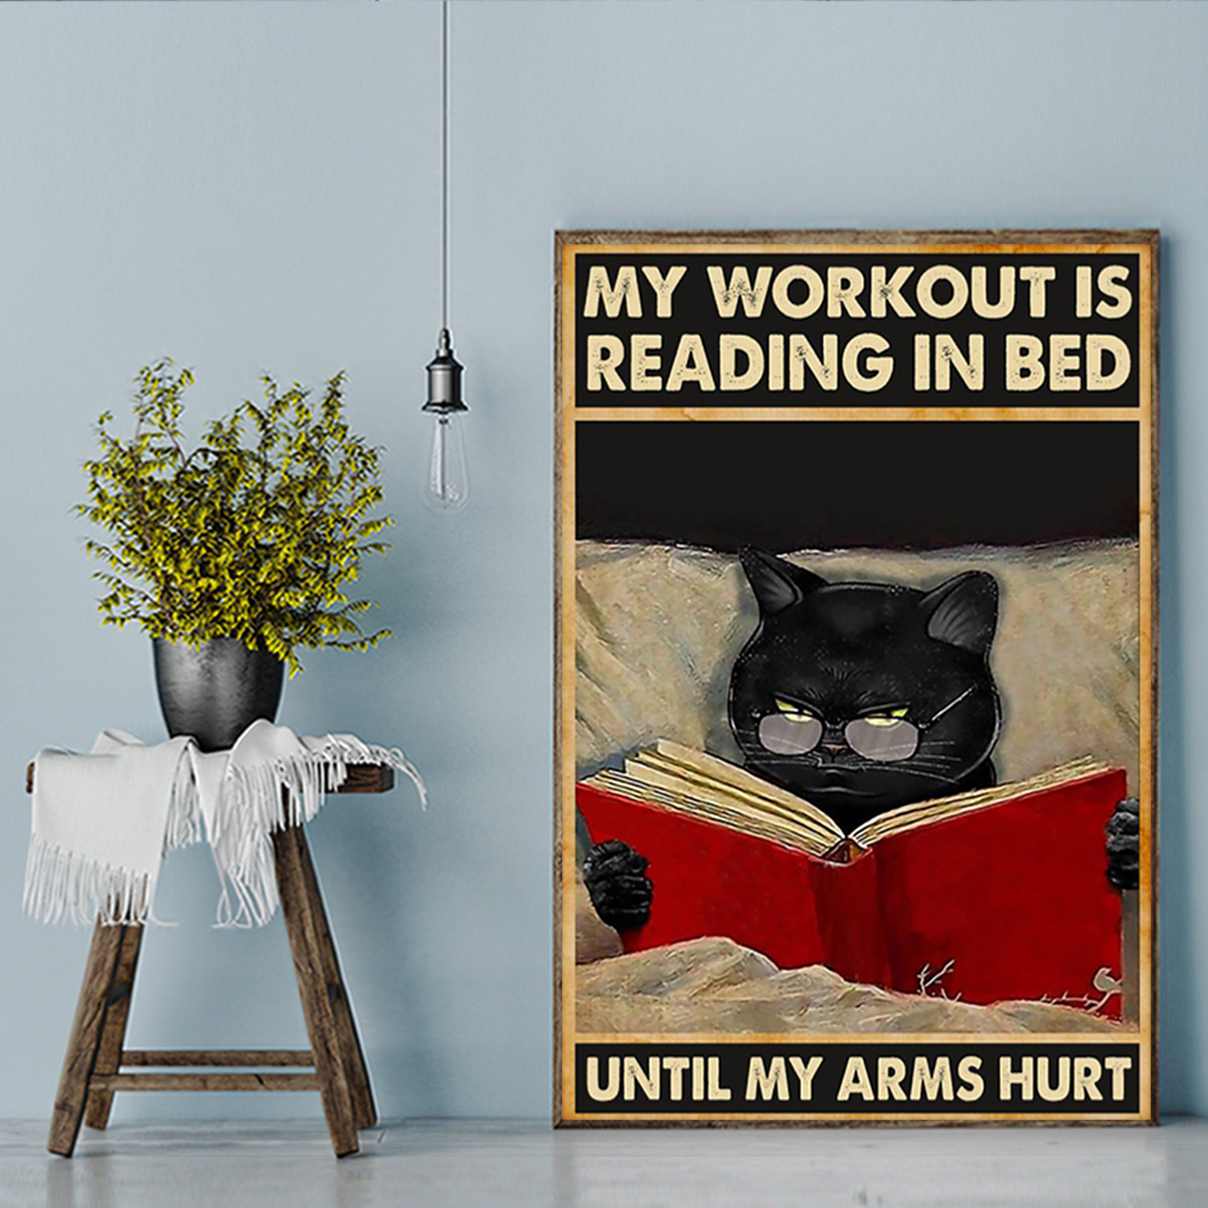 My workout is reading in bed until my arms hurt poster A3